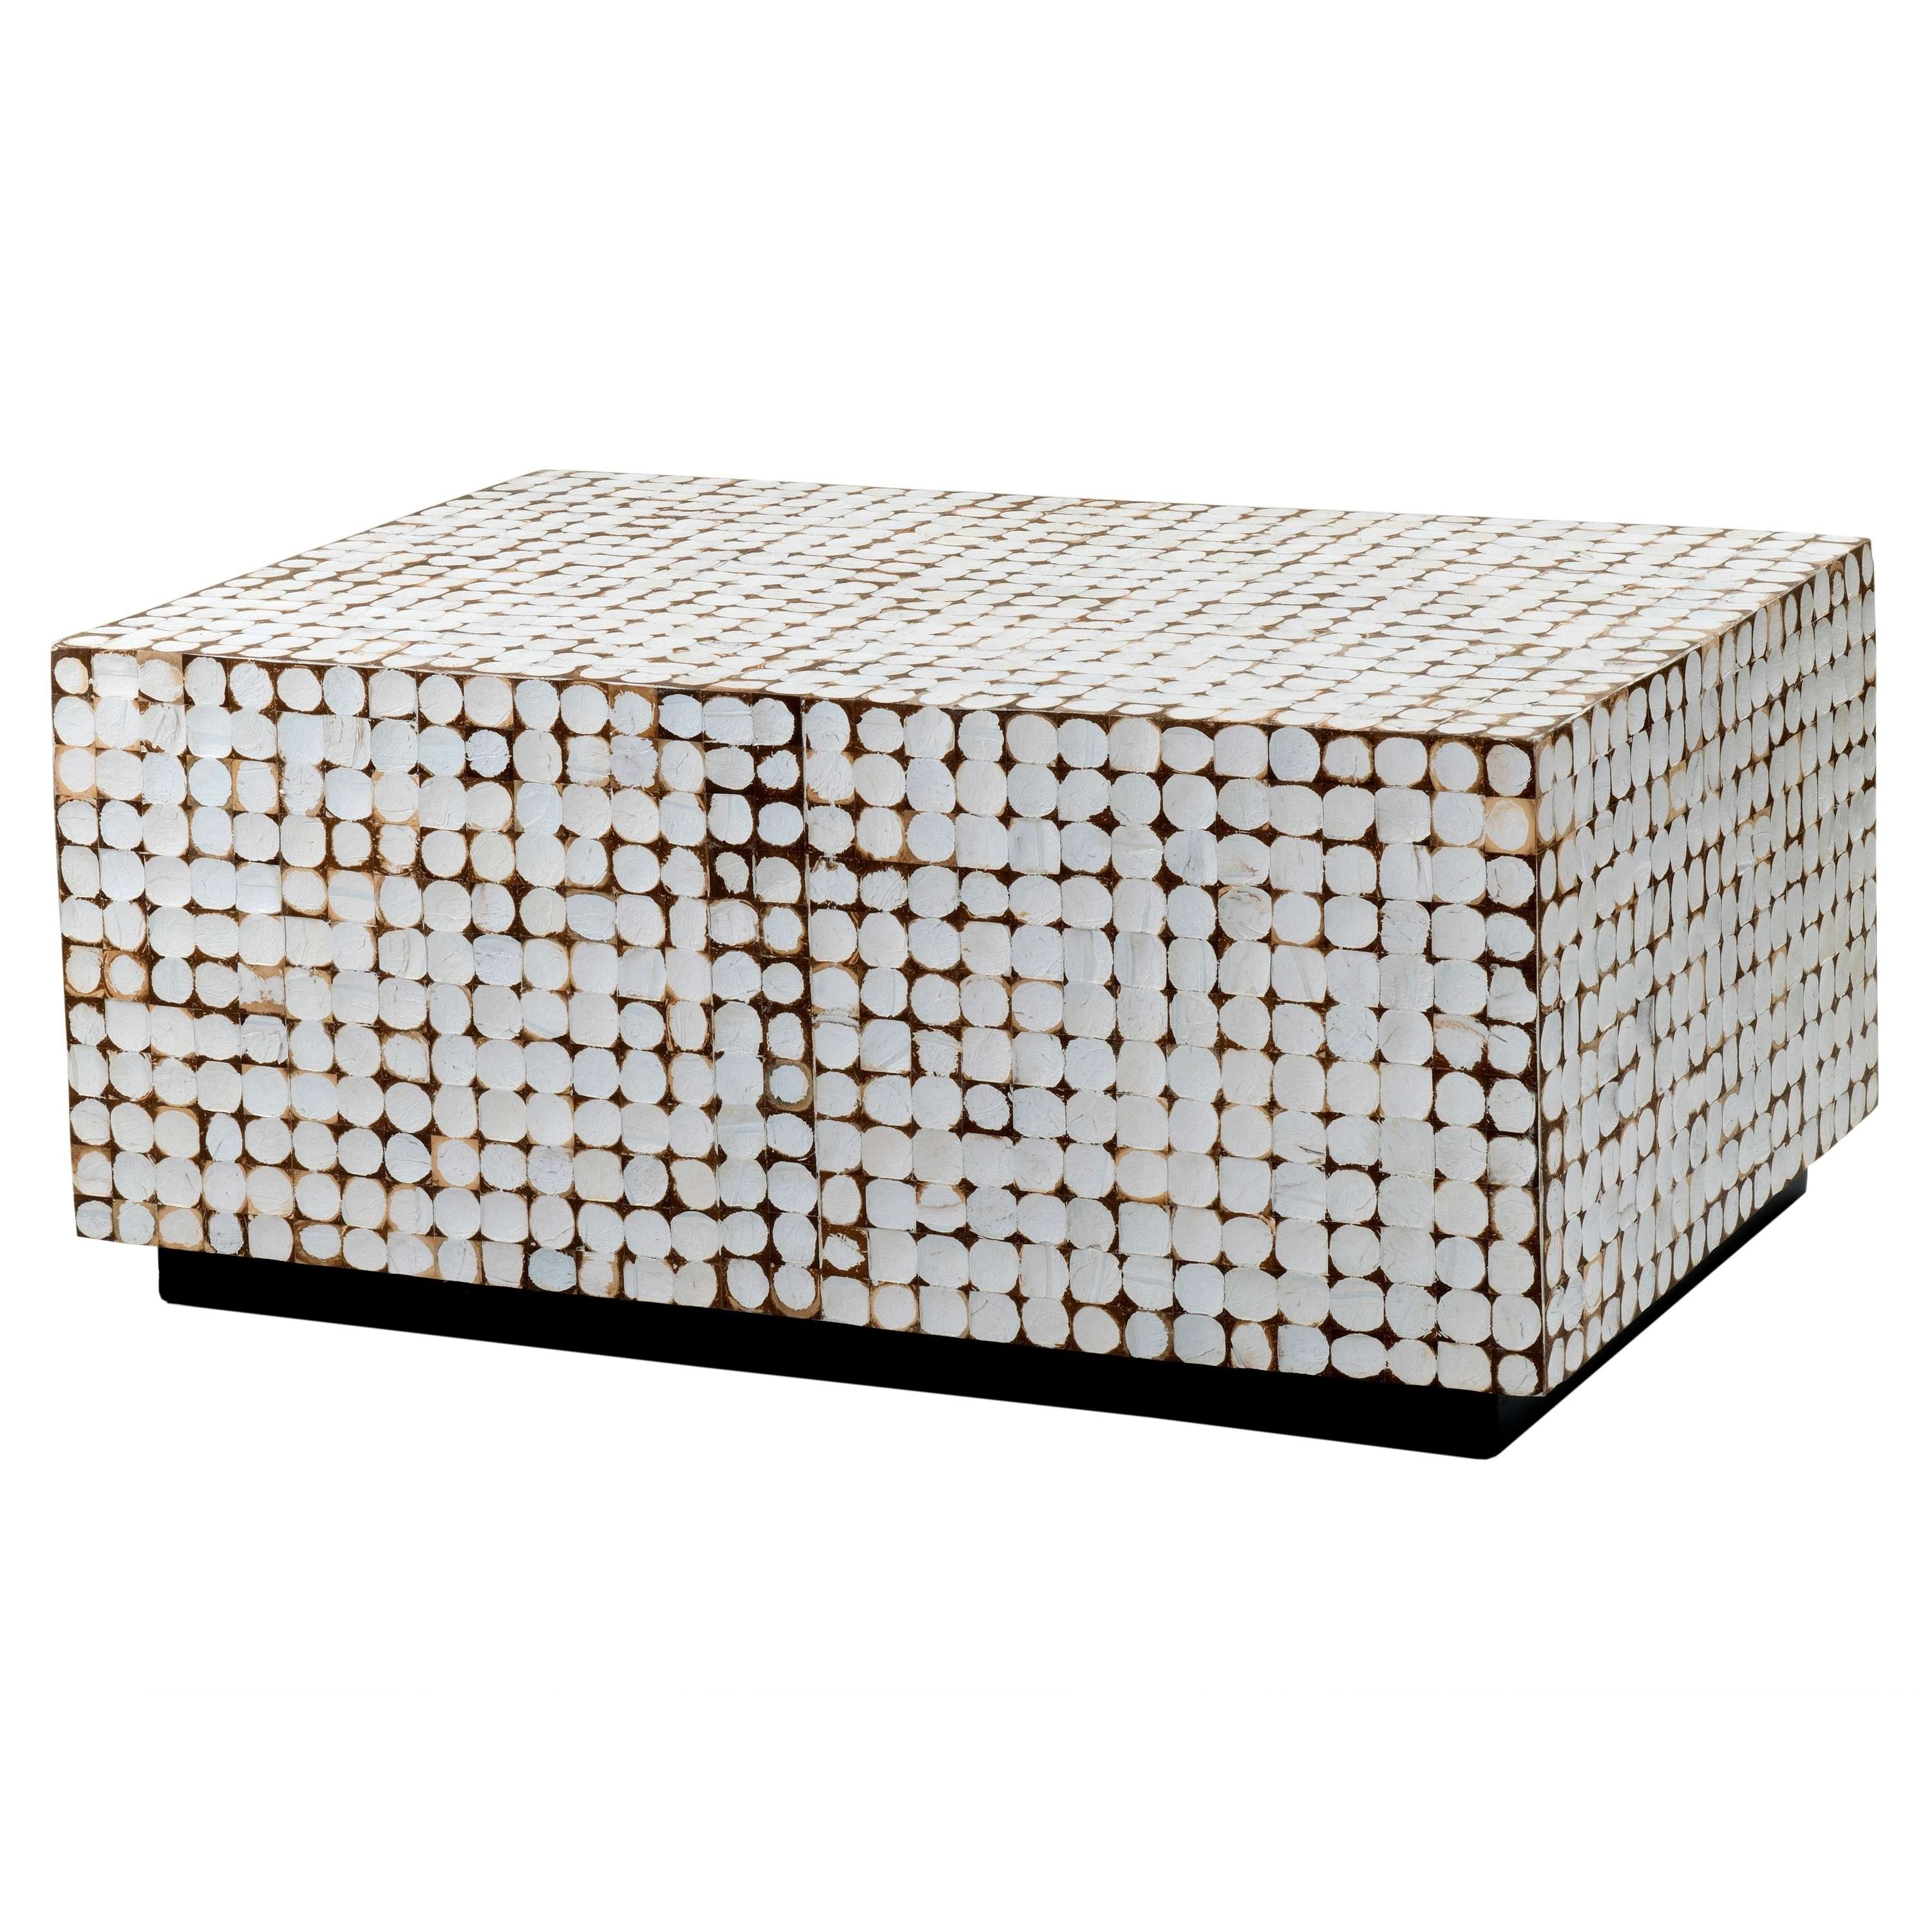 Verona White Rectangle Coffee Table – Free Shipping Today Intended For Most Current Verona Coffee Tables (Gallery 11 of 20)